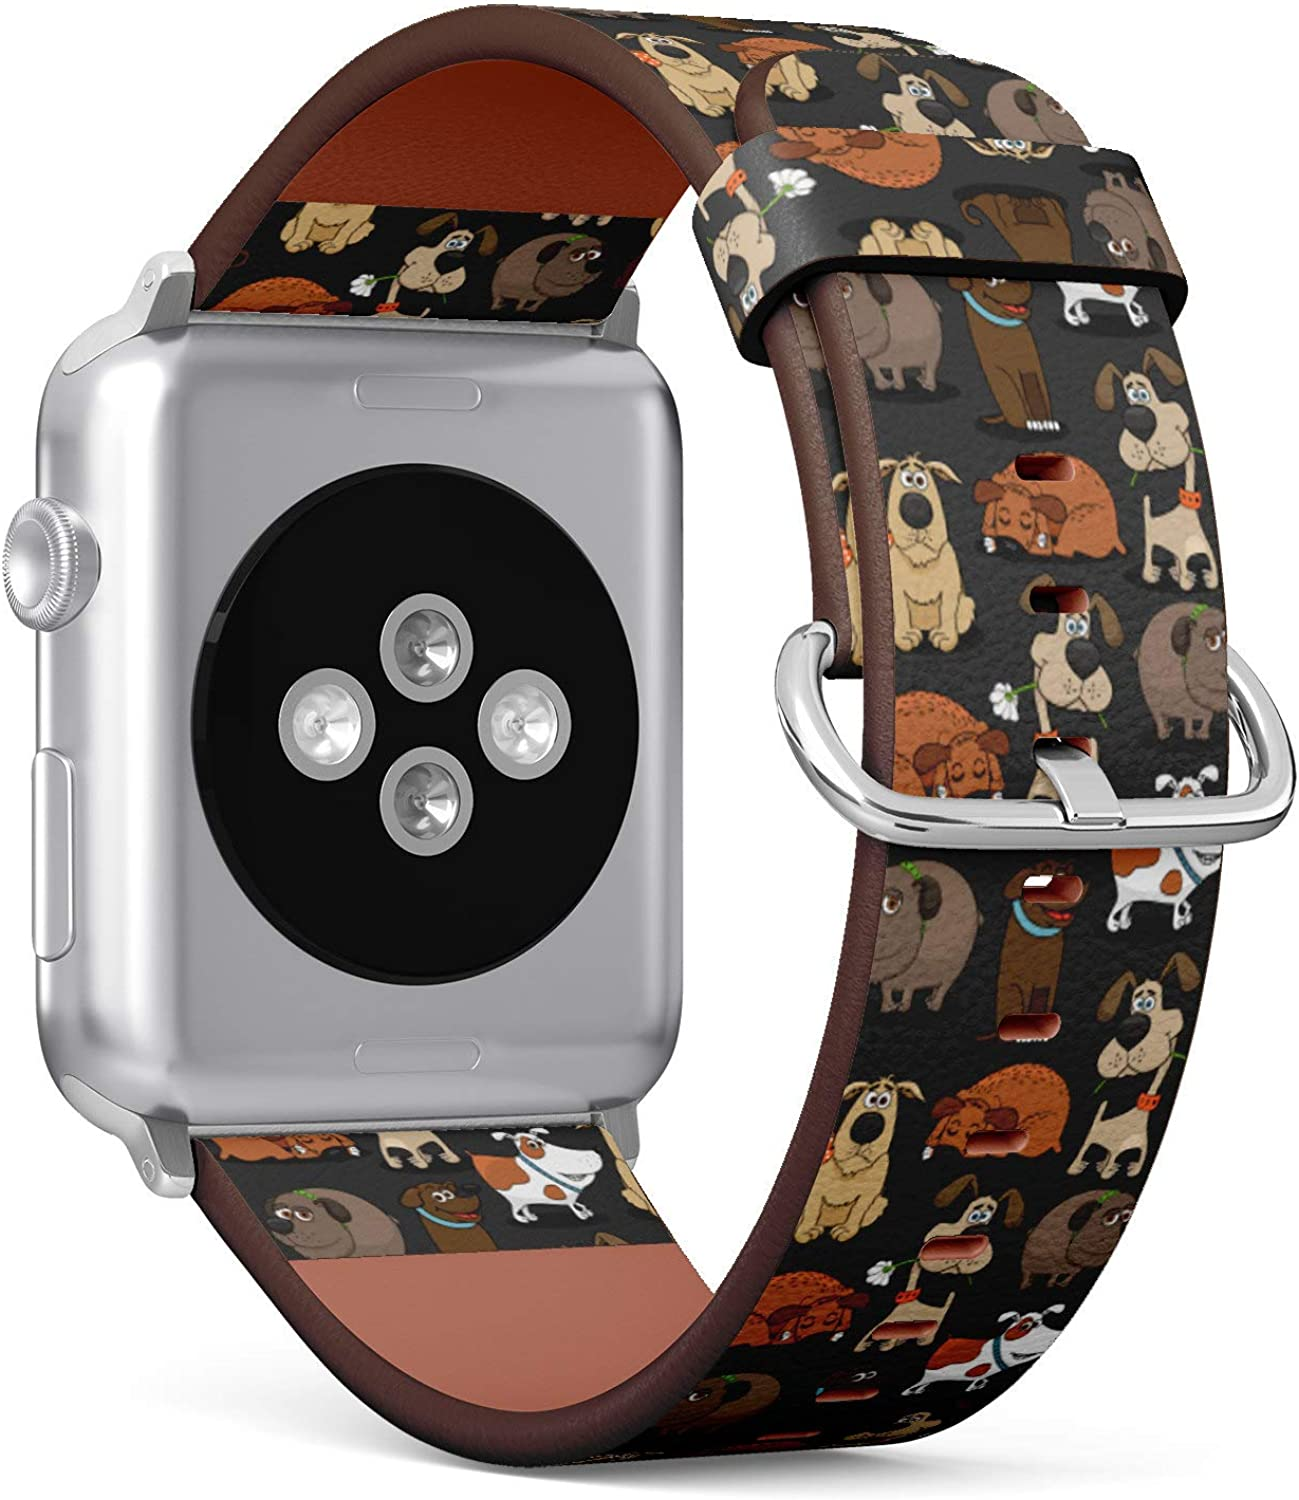 (Cute Dogs Pattern) Patterned Leather Wristband Strap for Apple Watch Series 4/3/2/1 gen,Replacement for iWatch 42mm / 44mm Bands